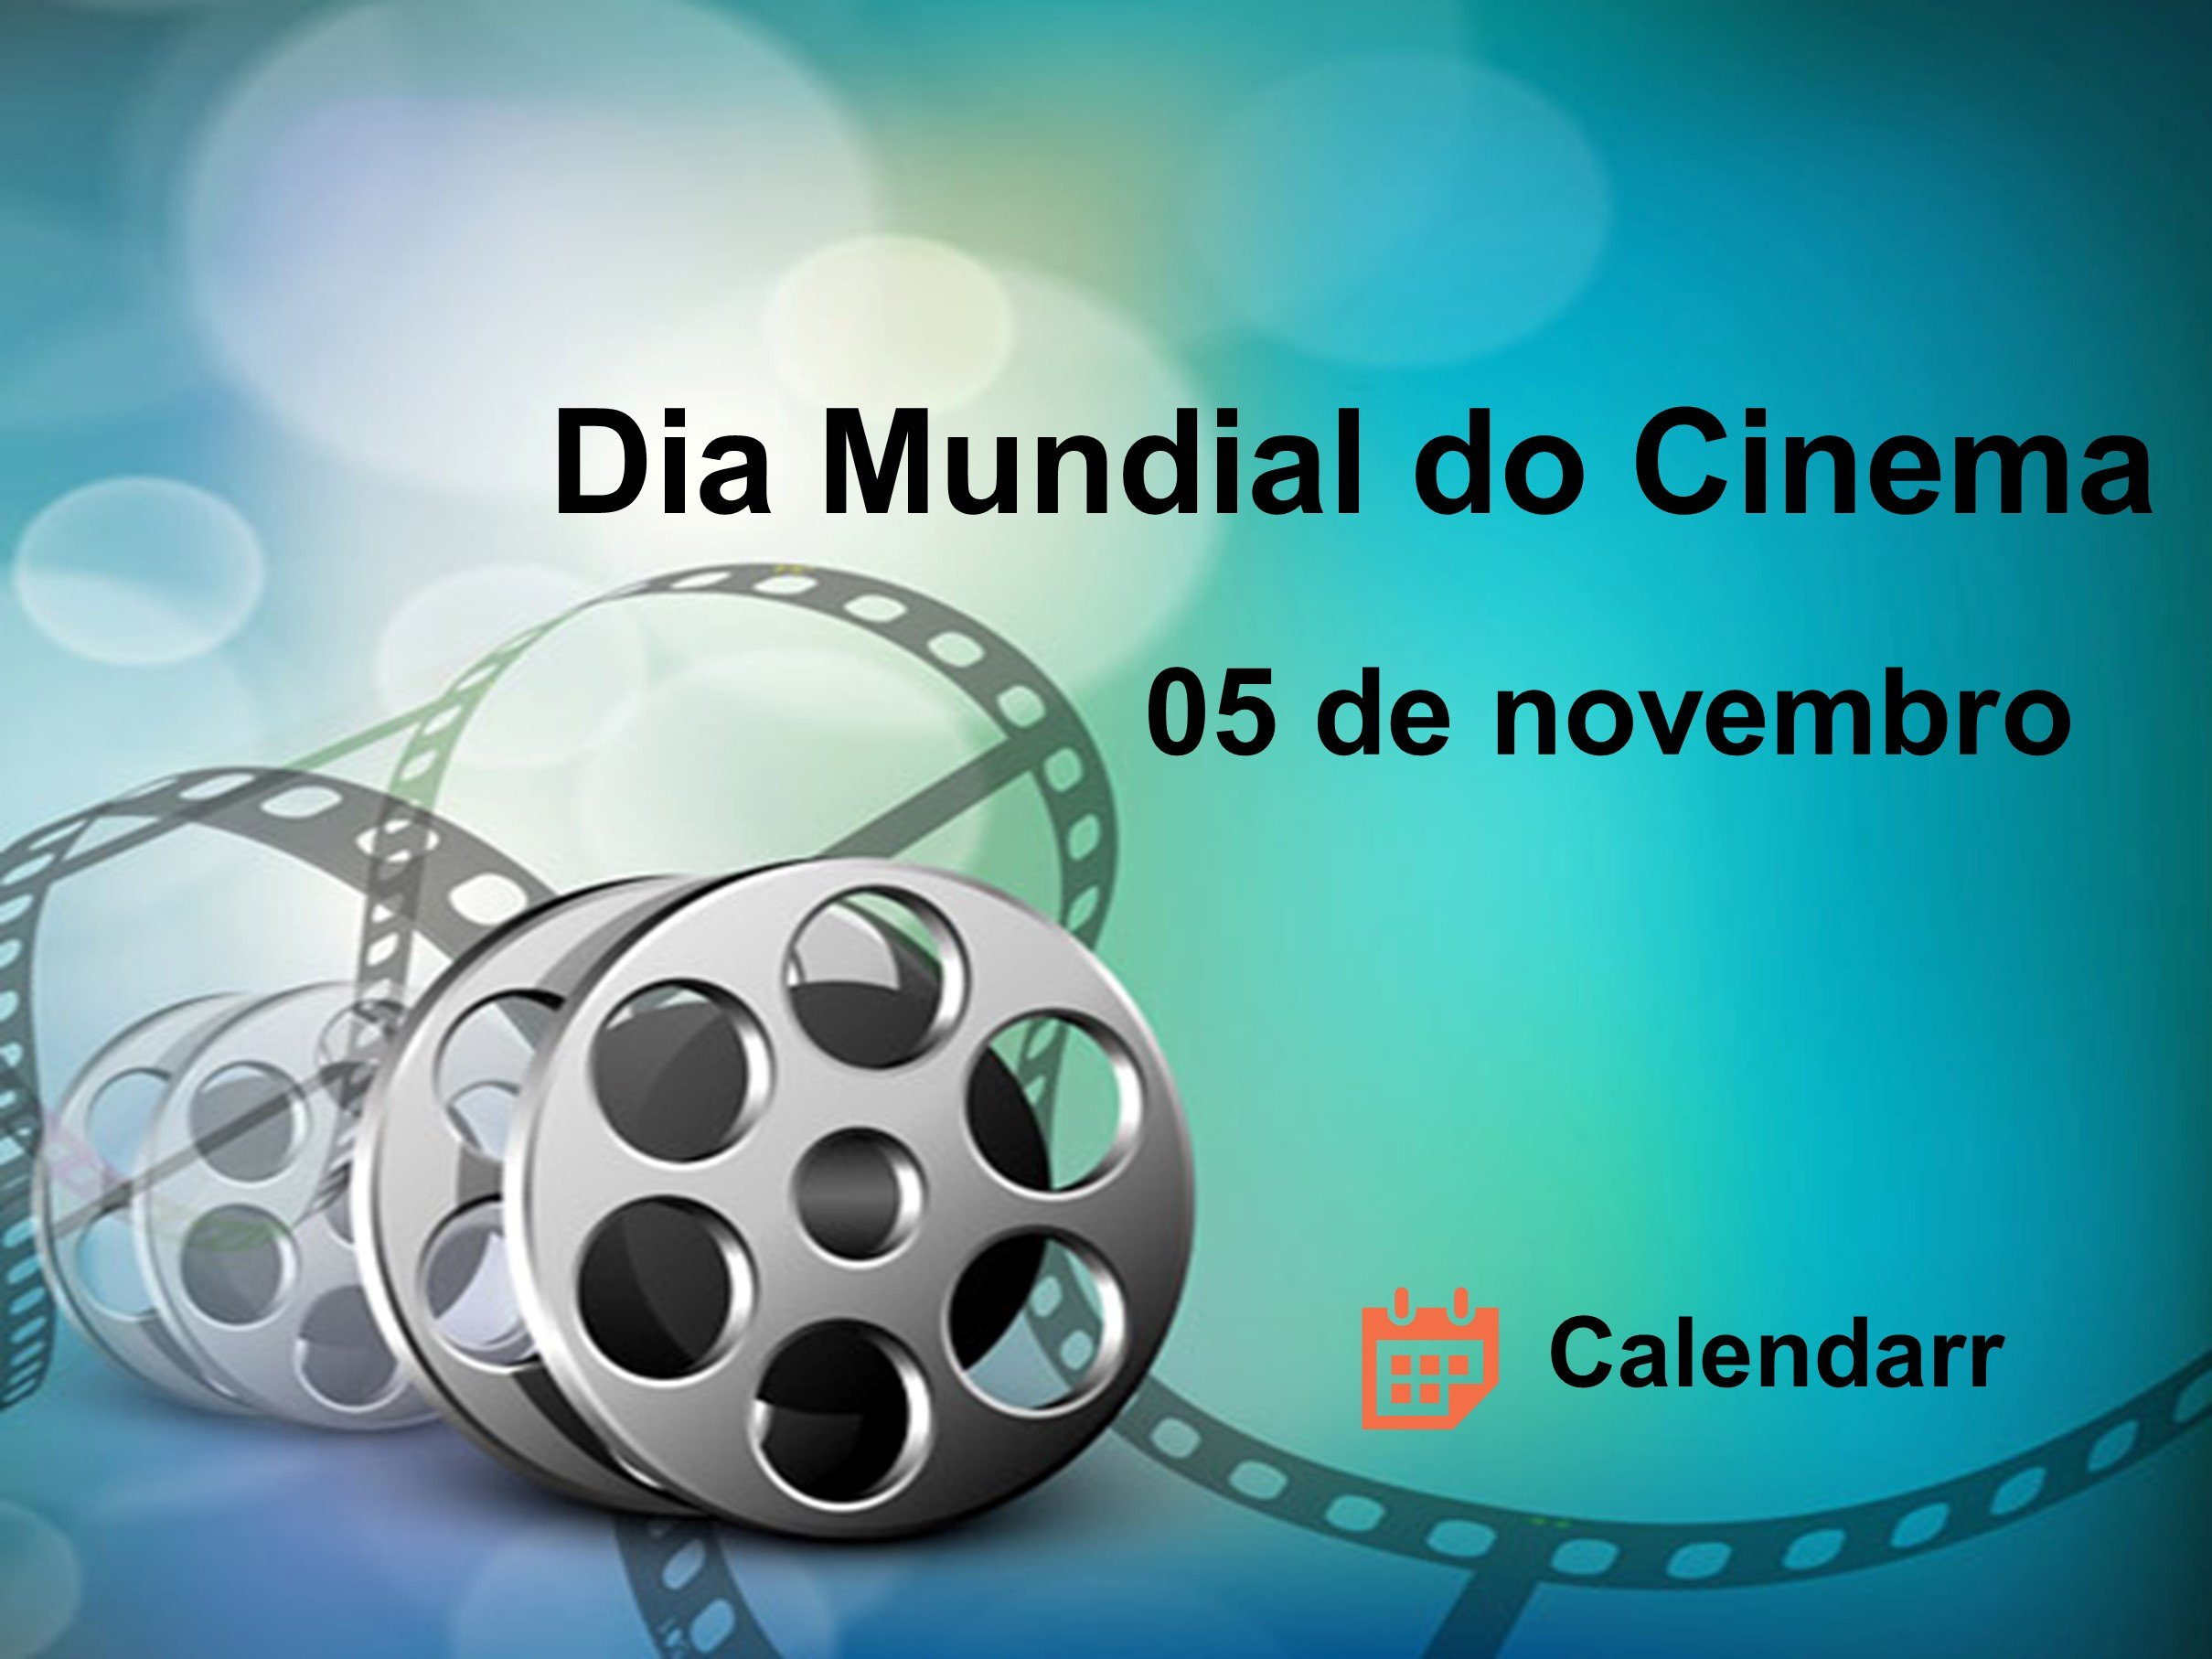 Dia Mundial do Cinema